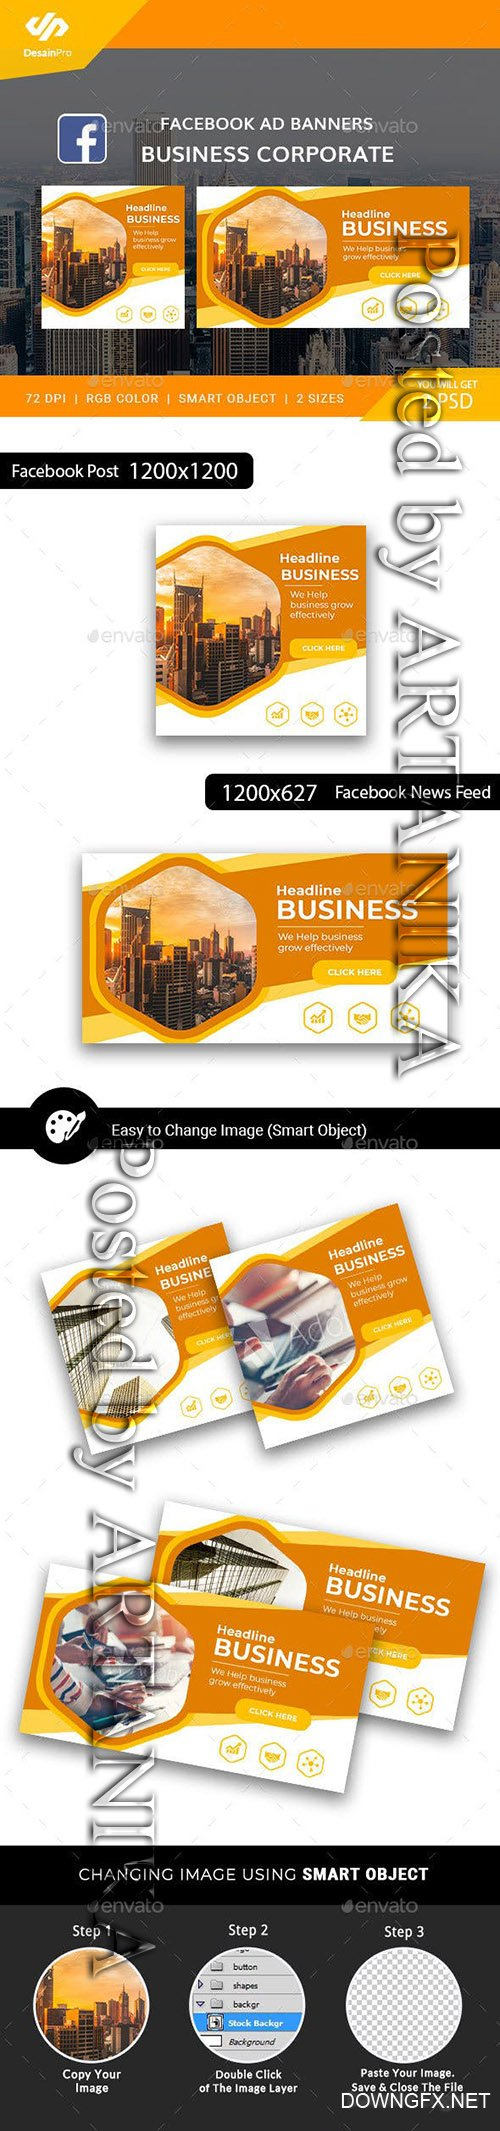 GraphicRiver - Business Corporate Facebook Ad Banners - AR 21892758